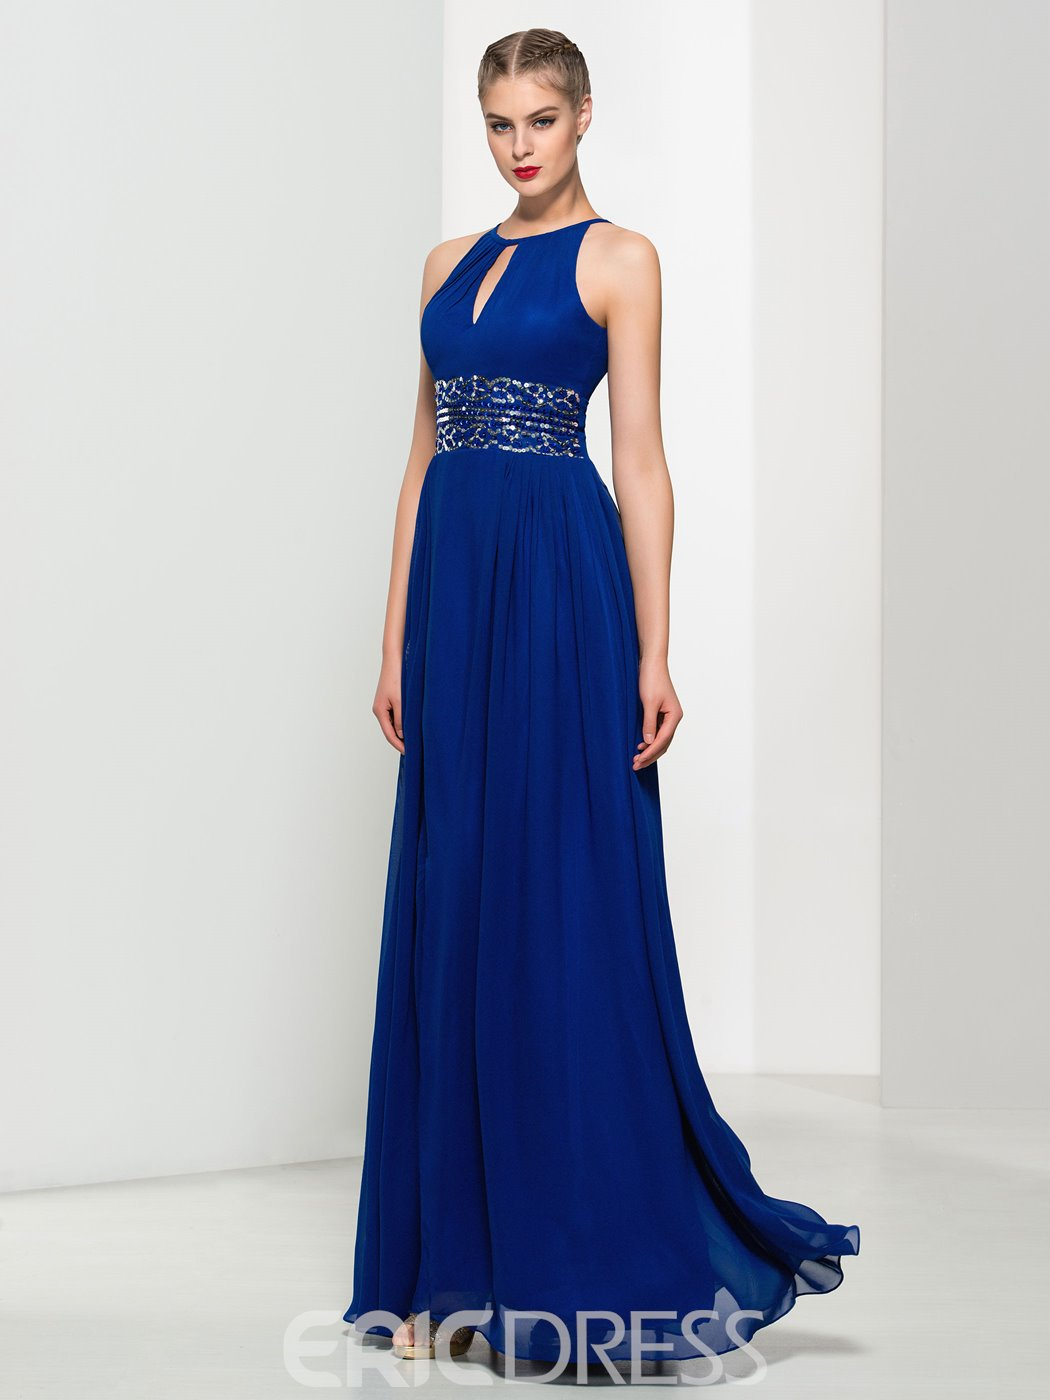 Ericdress A-Line Keyhole Neck Sequins Split-Front Long Prom Dress